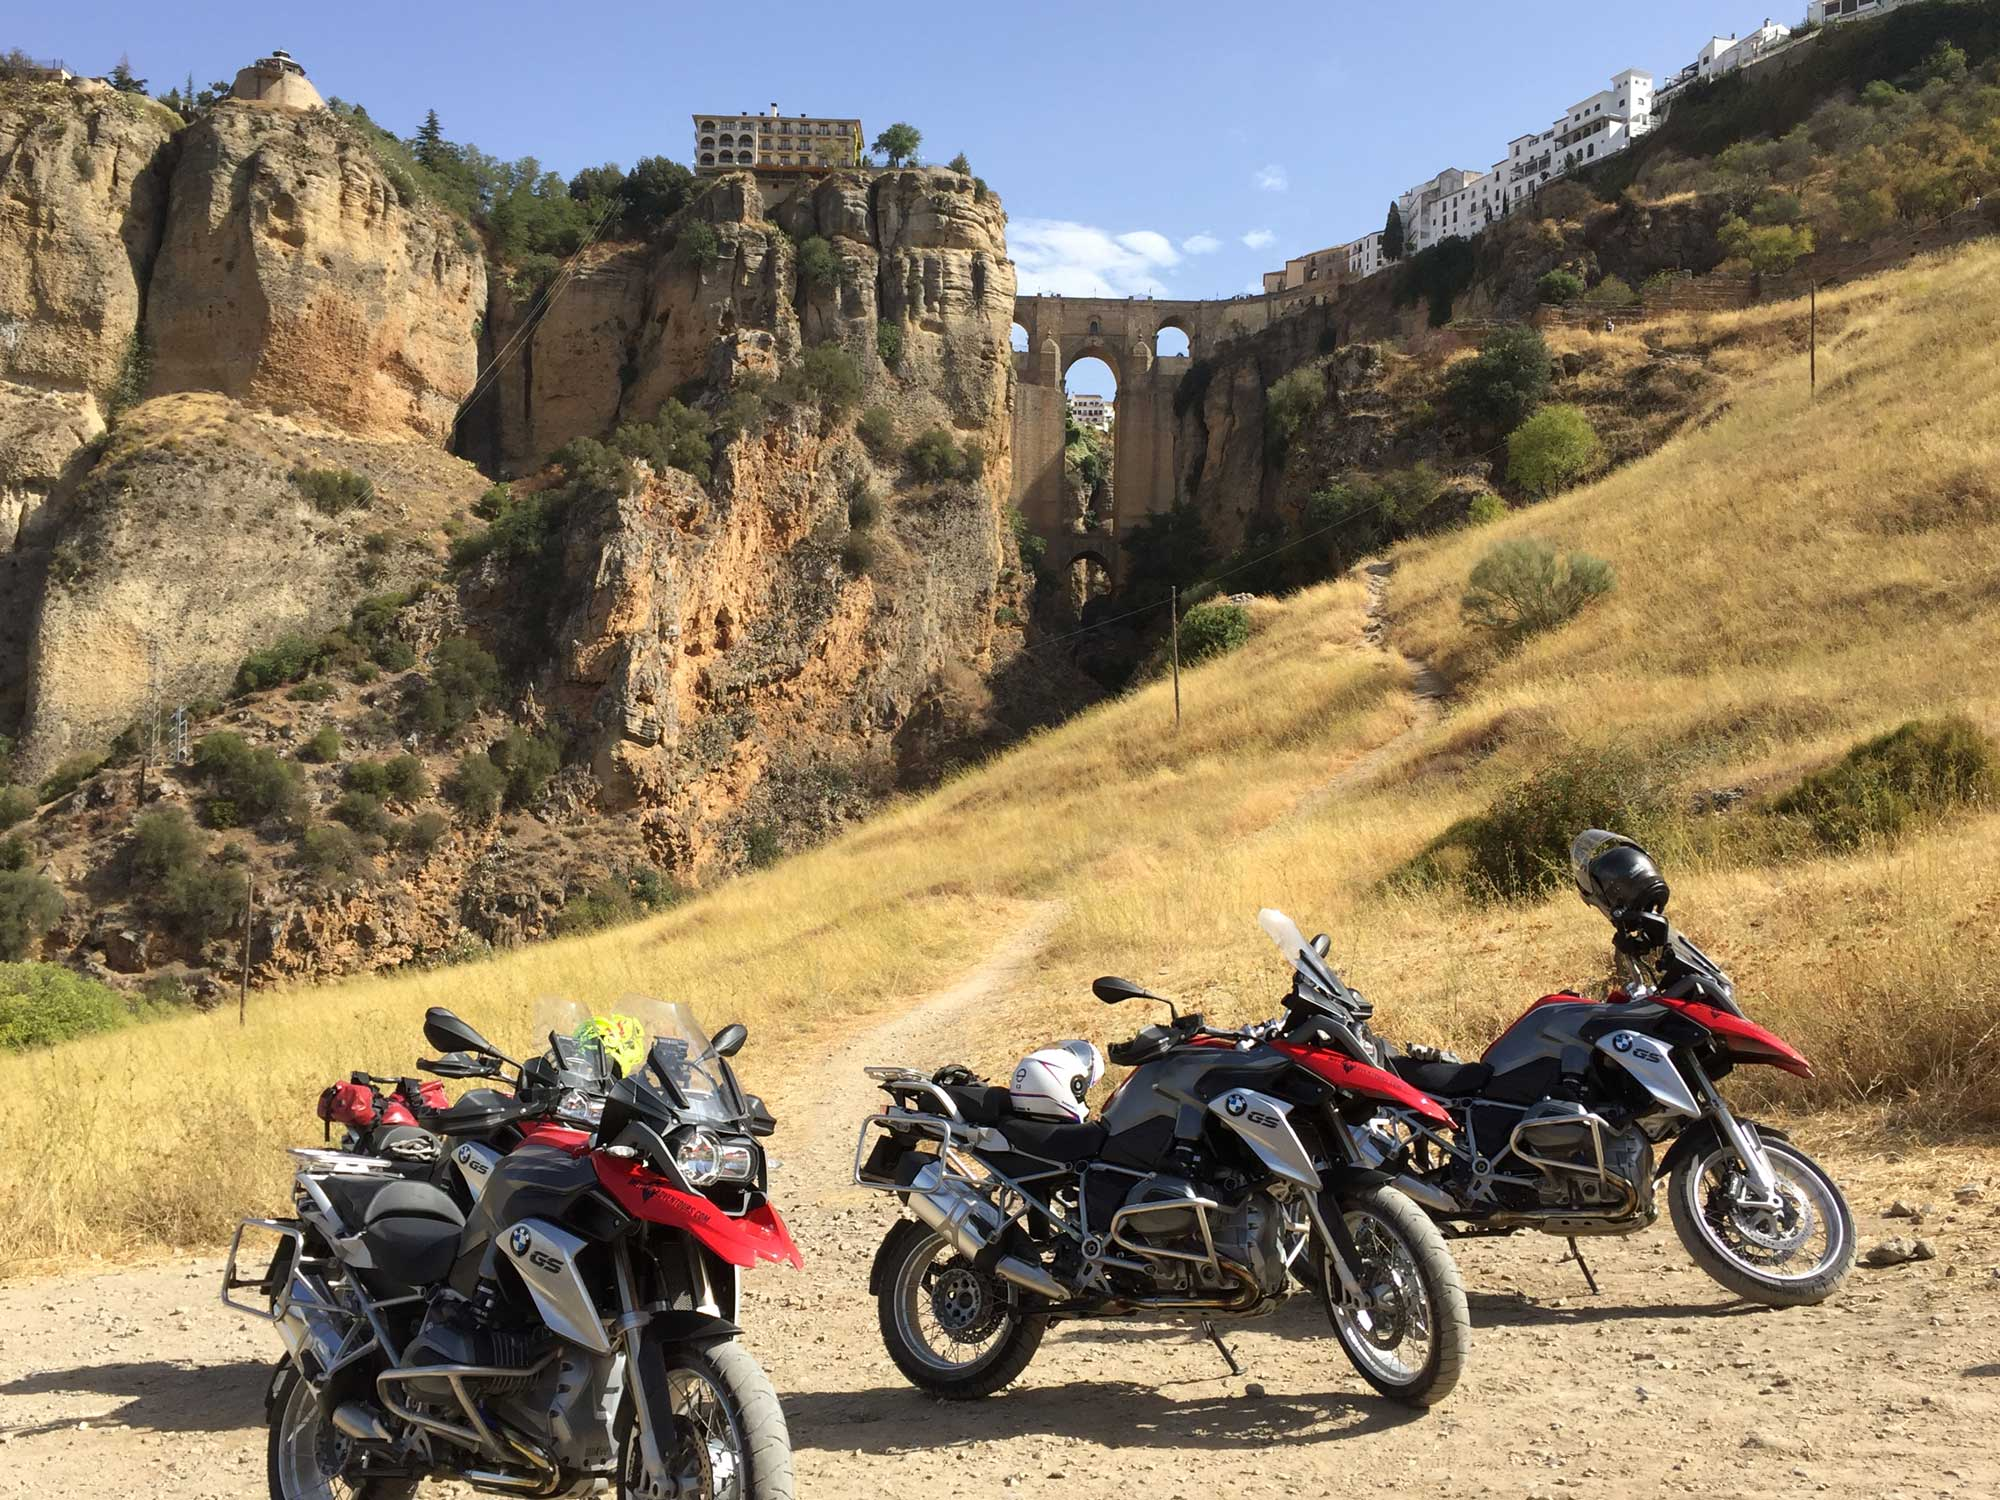 Motorcycle-Rentals-in-Europe